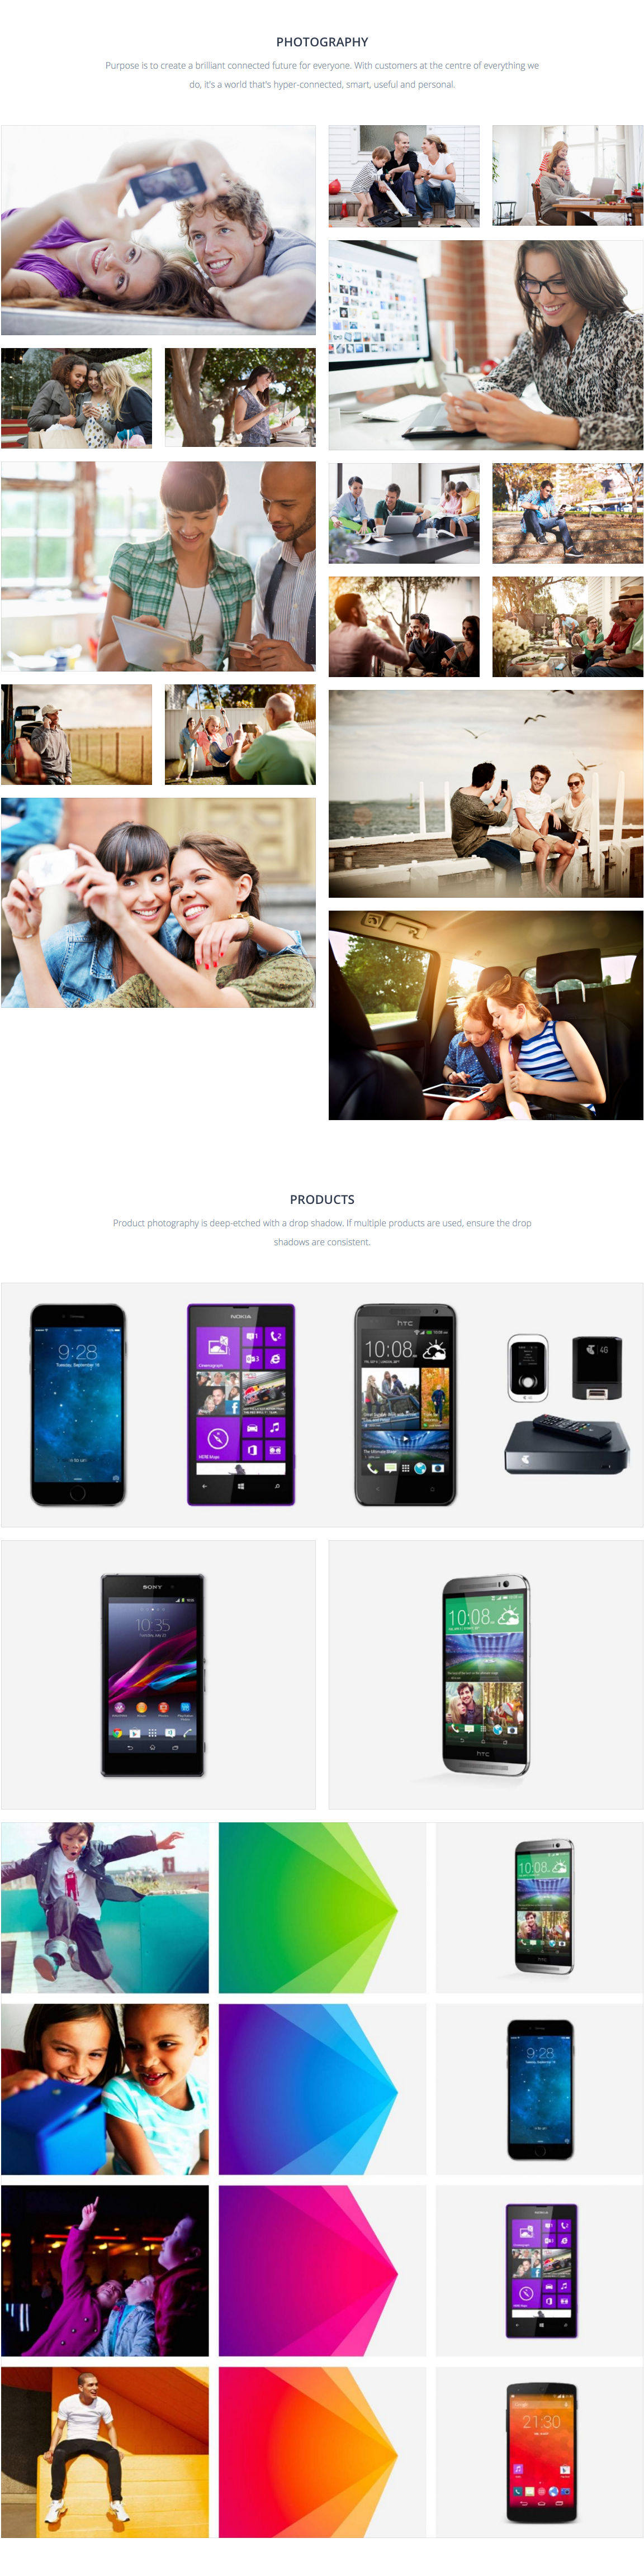 03Invision_Telstra_Website_Redesign